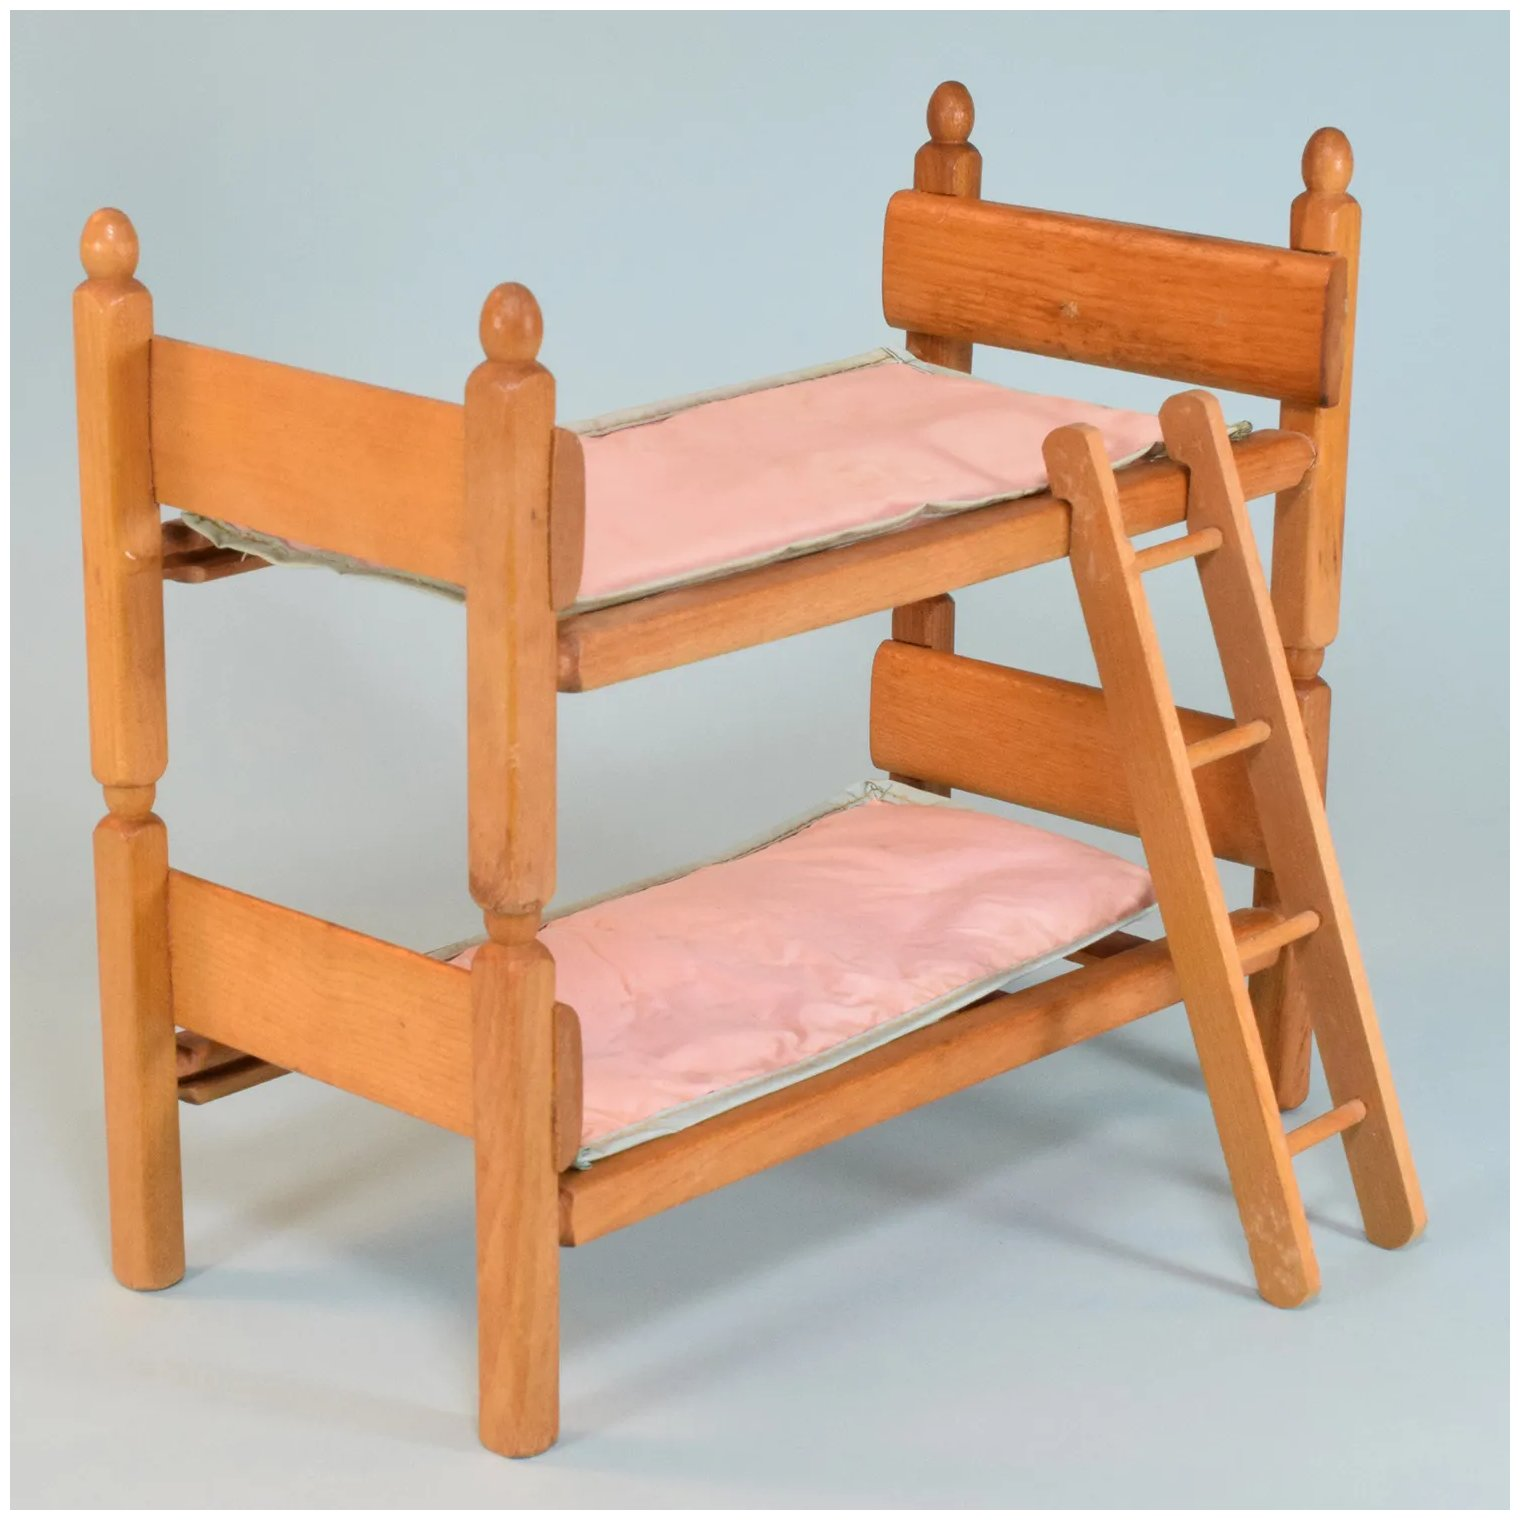 Picture of: Strombecker Blonde Wood Bunk Beds With Ladder And Original Mattresses Curley Creek Antiques Collectibles Ruby Lane